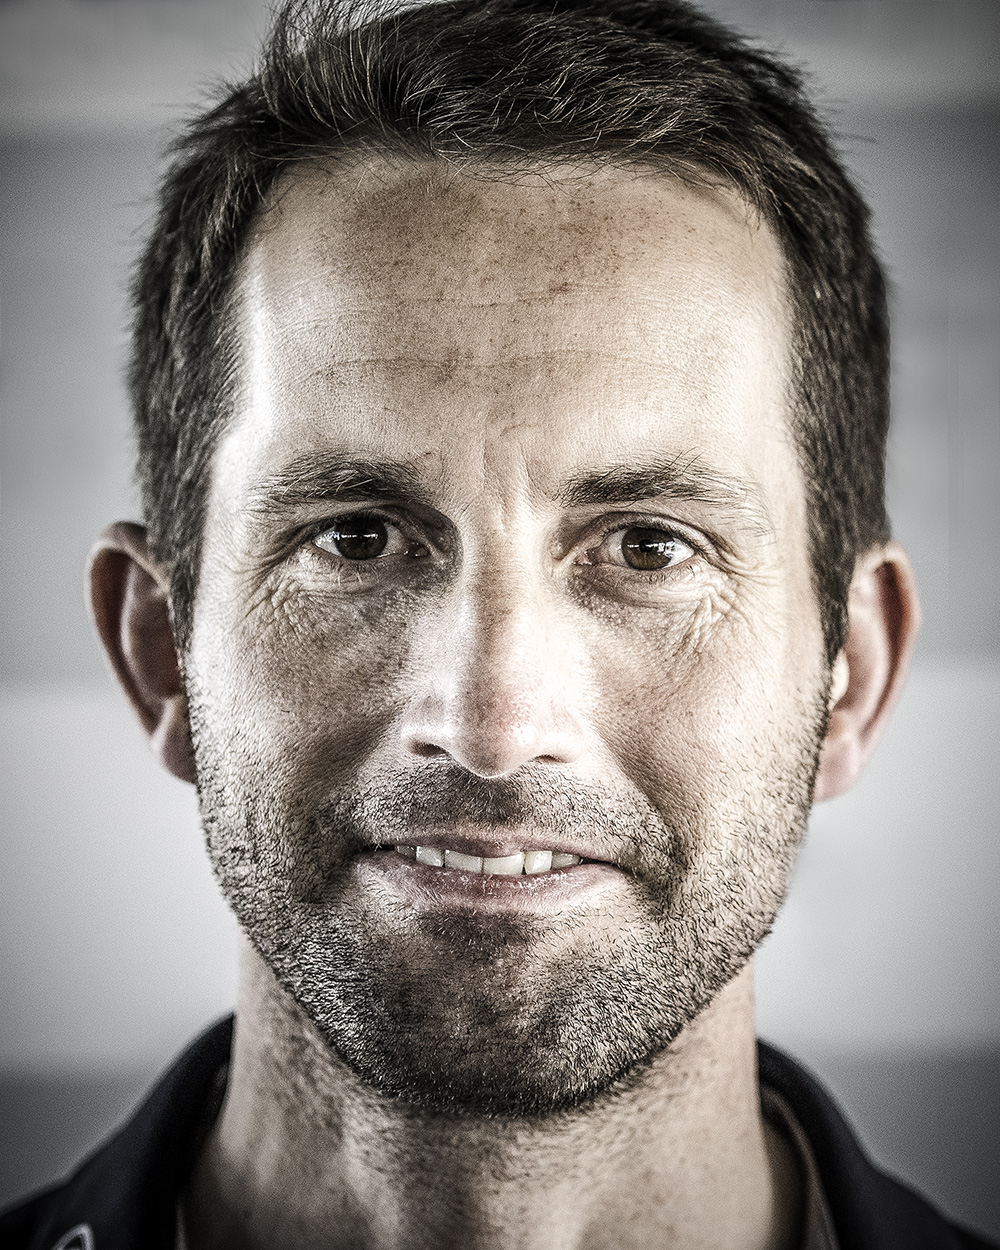 Olympic America Cup Sailor Ben Ainslie_Adam Jacobs Photography